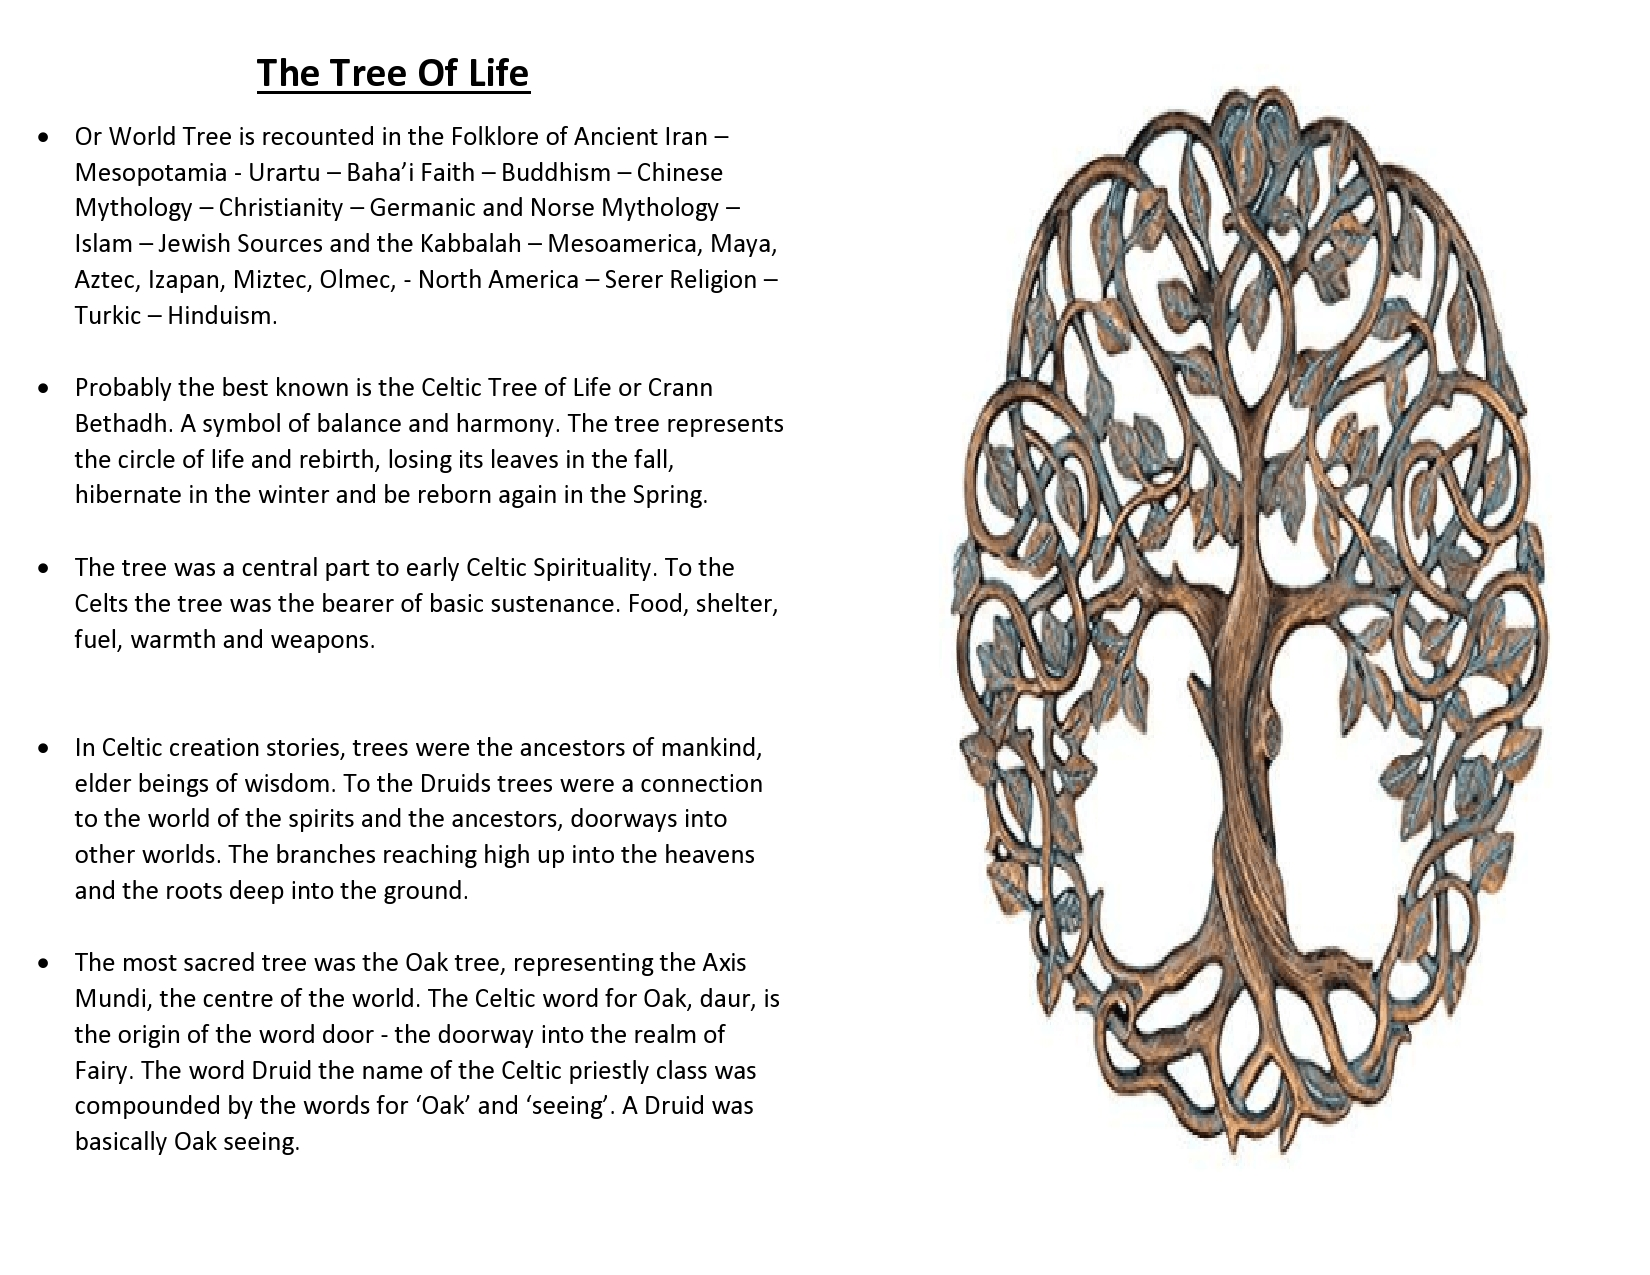 Tree of Life #160 #209 #211 #218 #231a